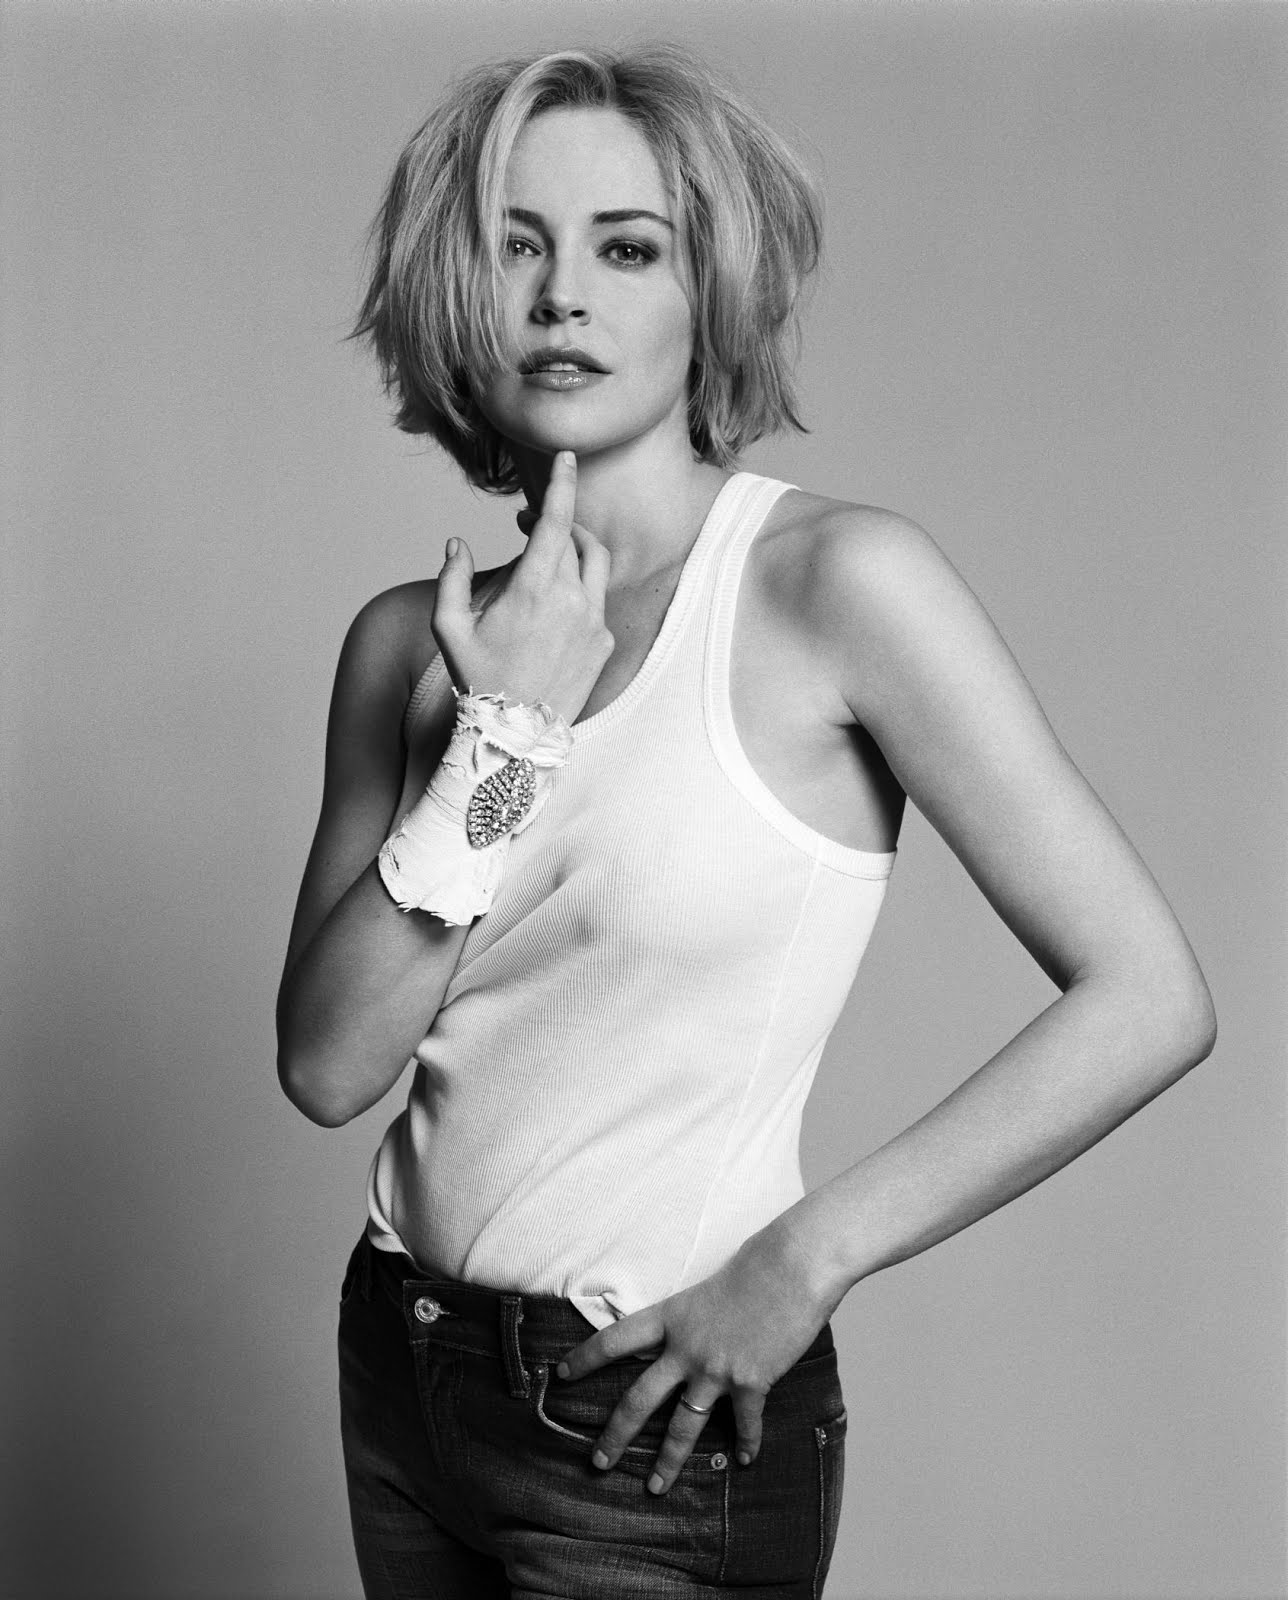 Sharon Stone For mobile